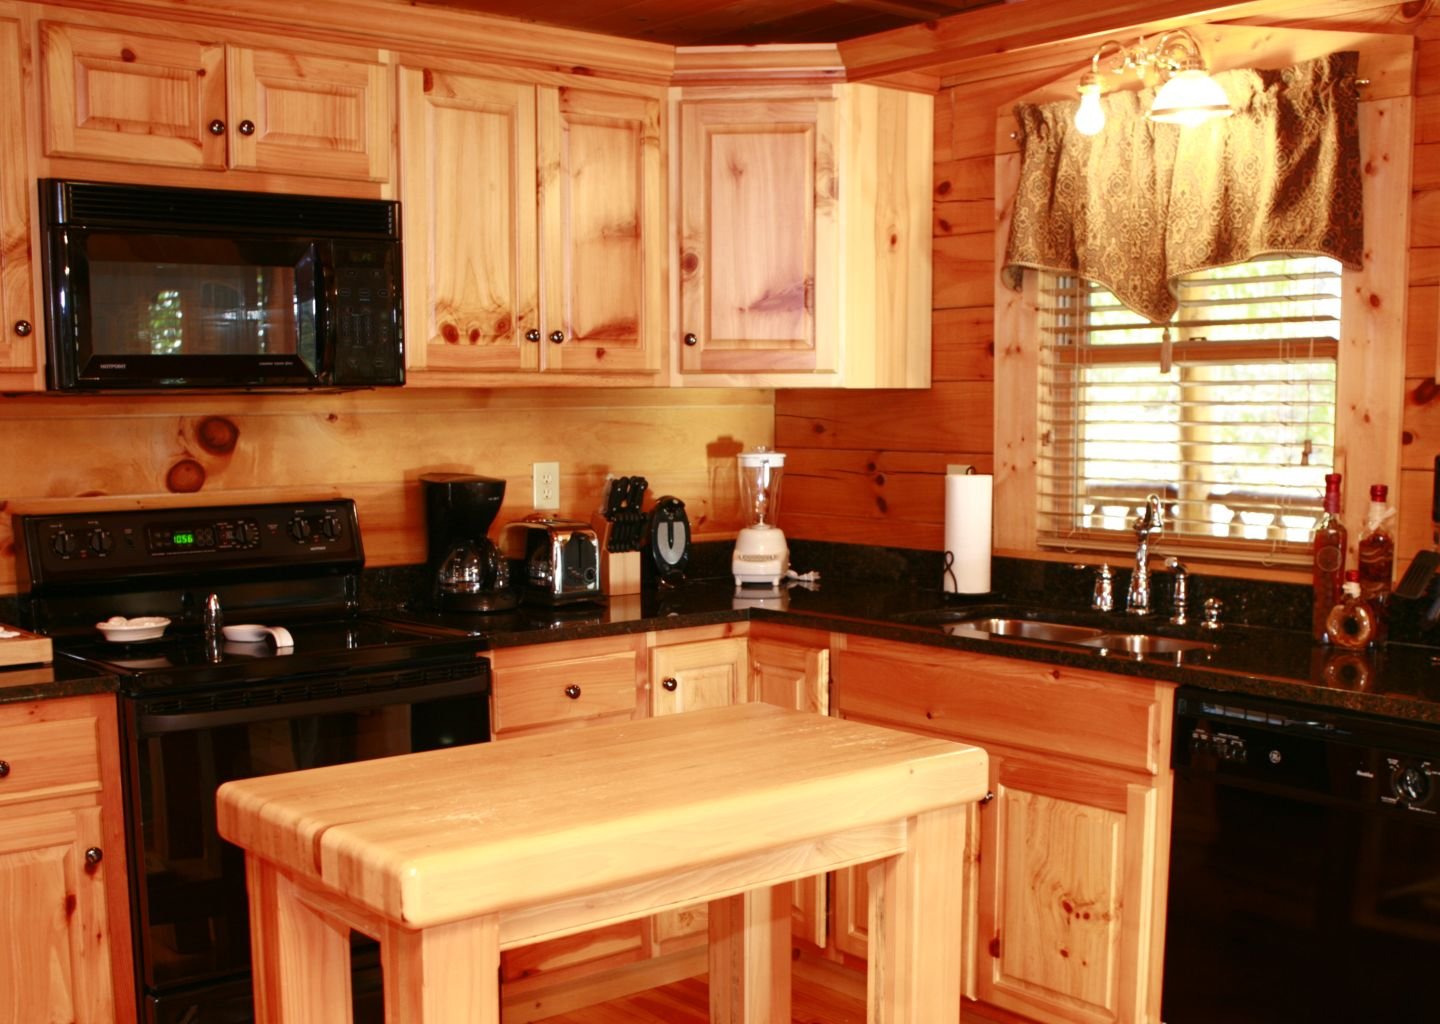 A Kitchen With A Stove Top Oven Sitting Inside Of A Wooden Table